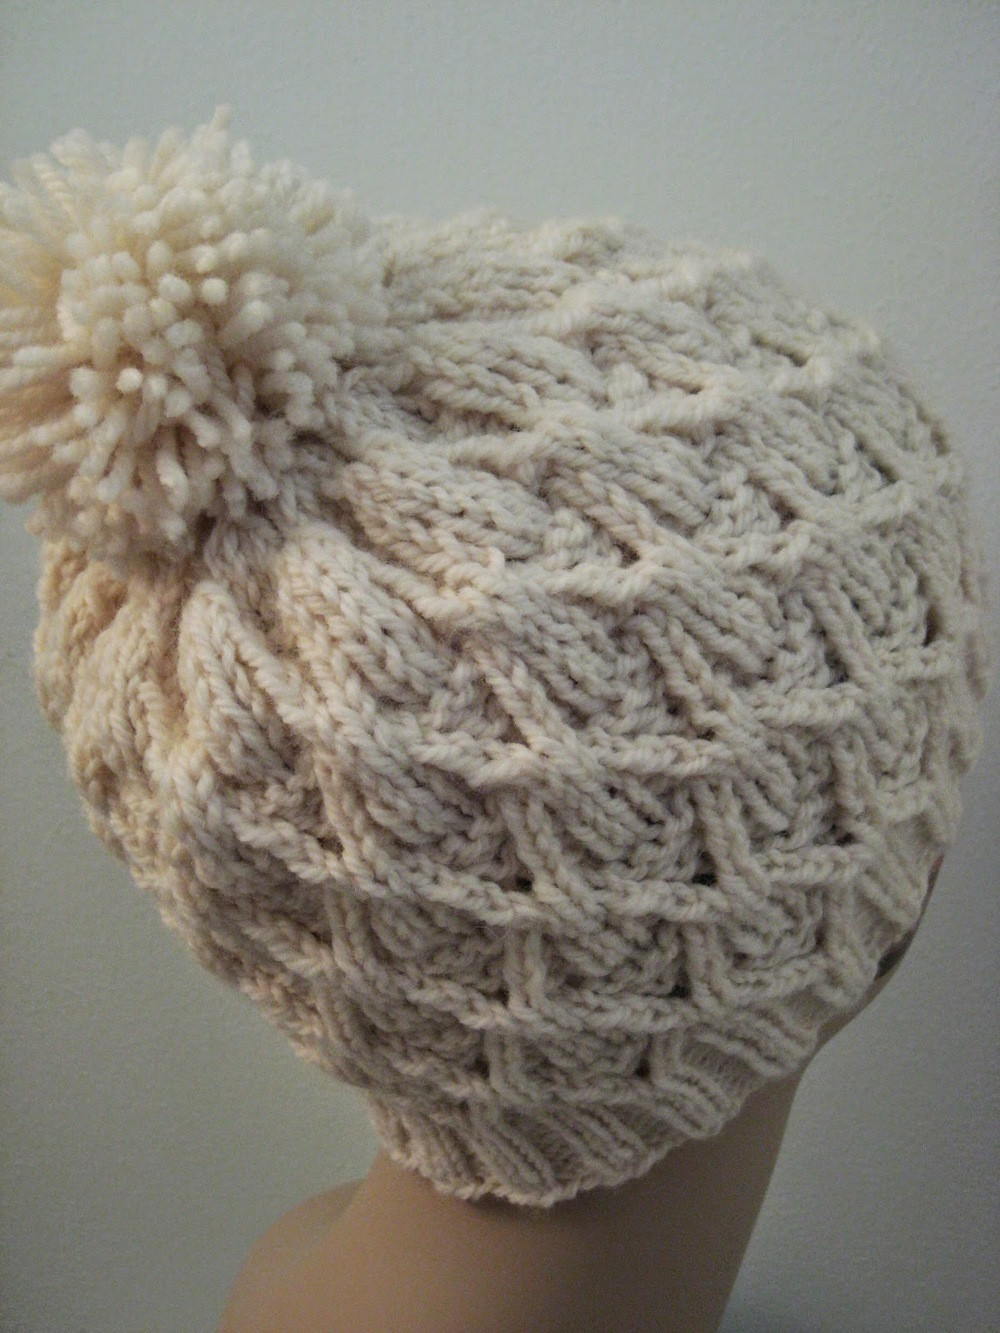 New Easy Free Knitting Patterns Crochet and Knit Easy Knitting Projects Of Awesome 42 Pics Easy Knitting Projects